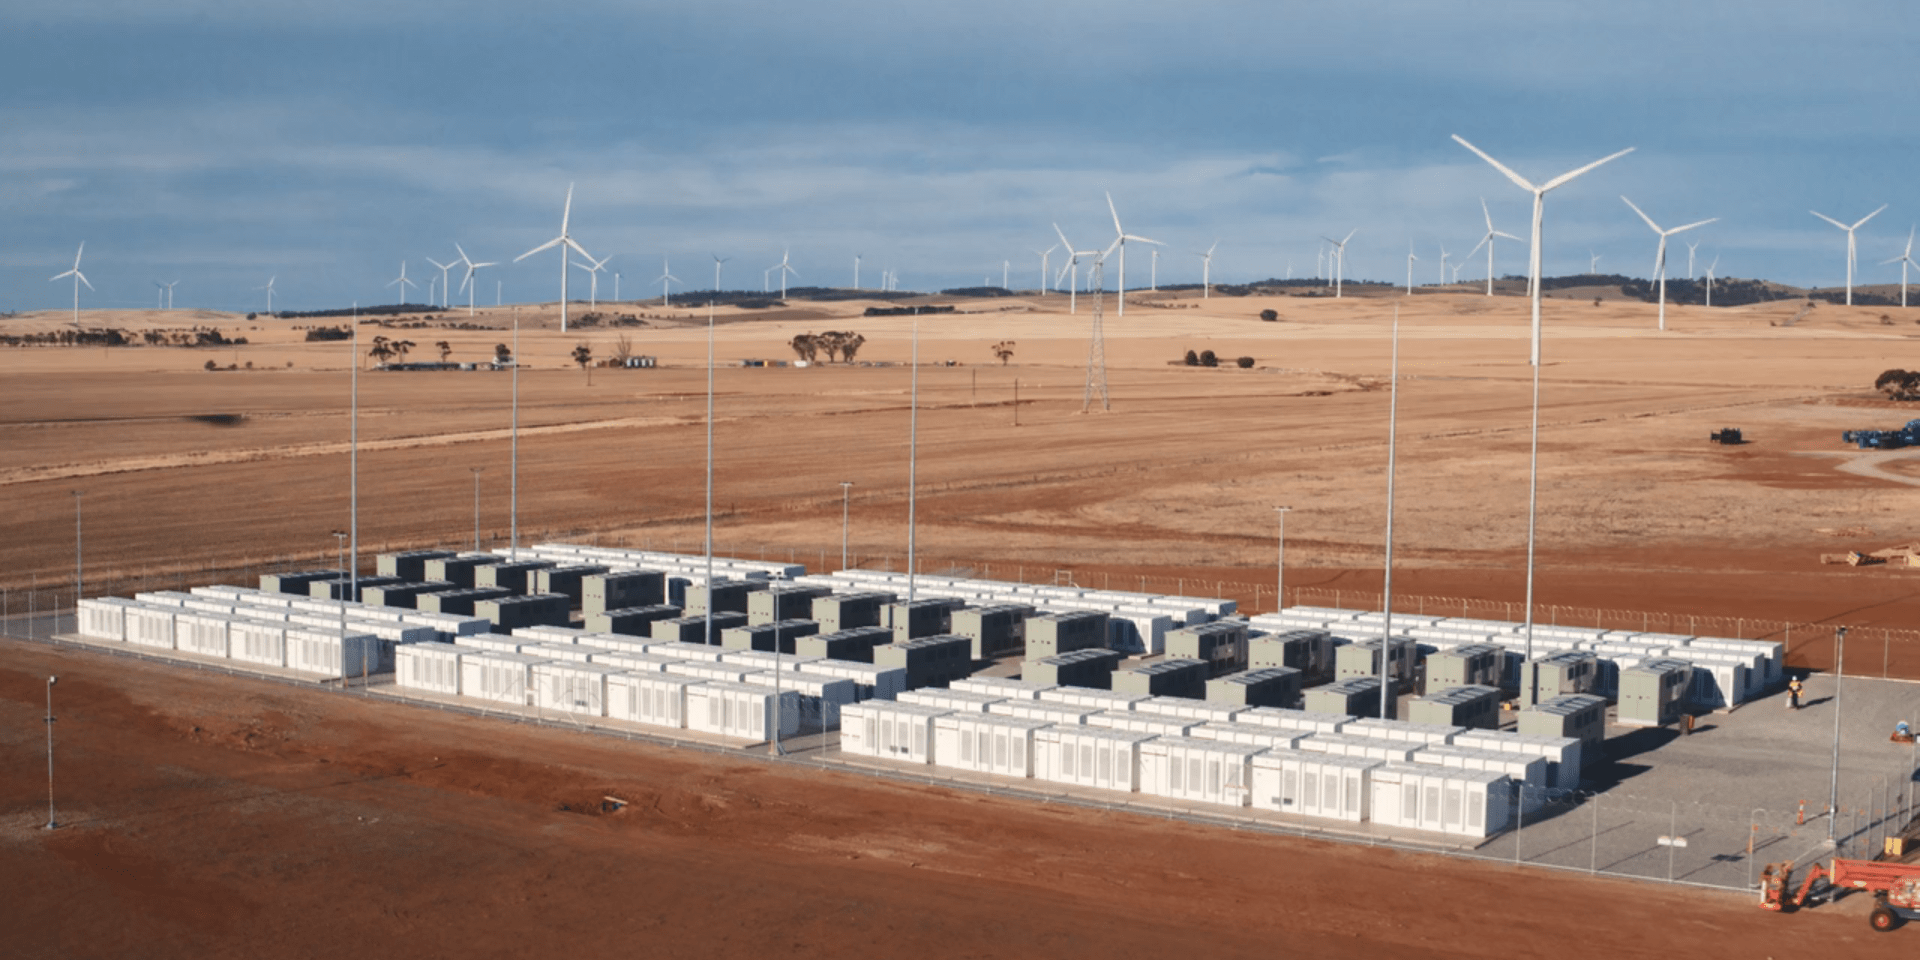 The Hornsdale Battery Storage Facility in South Australia. Photo from Electrek.com